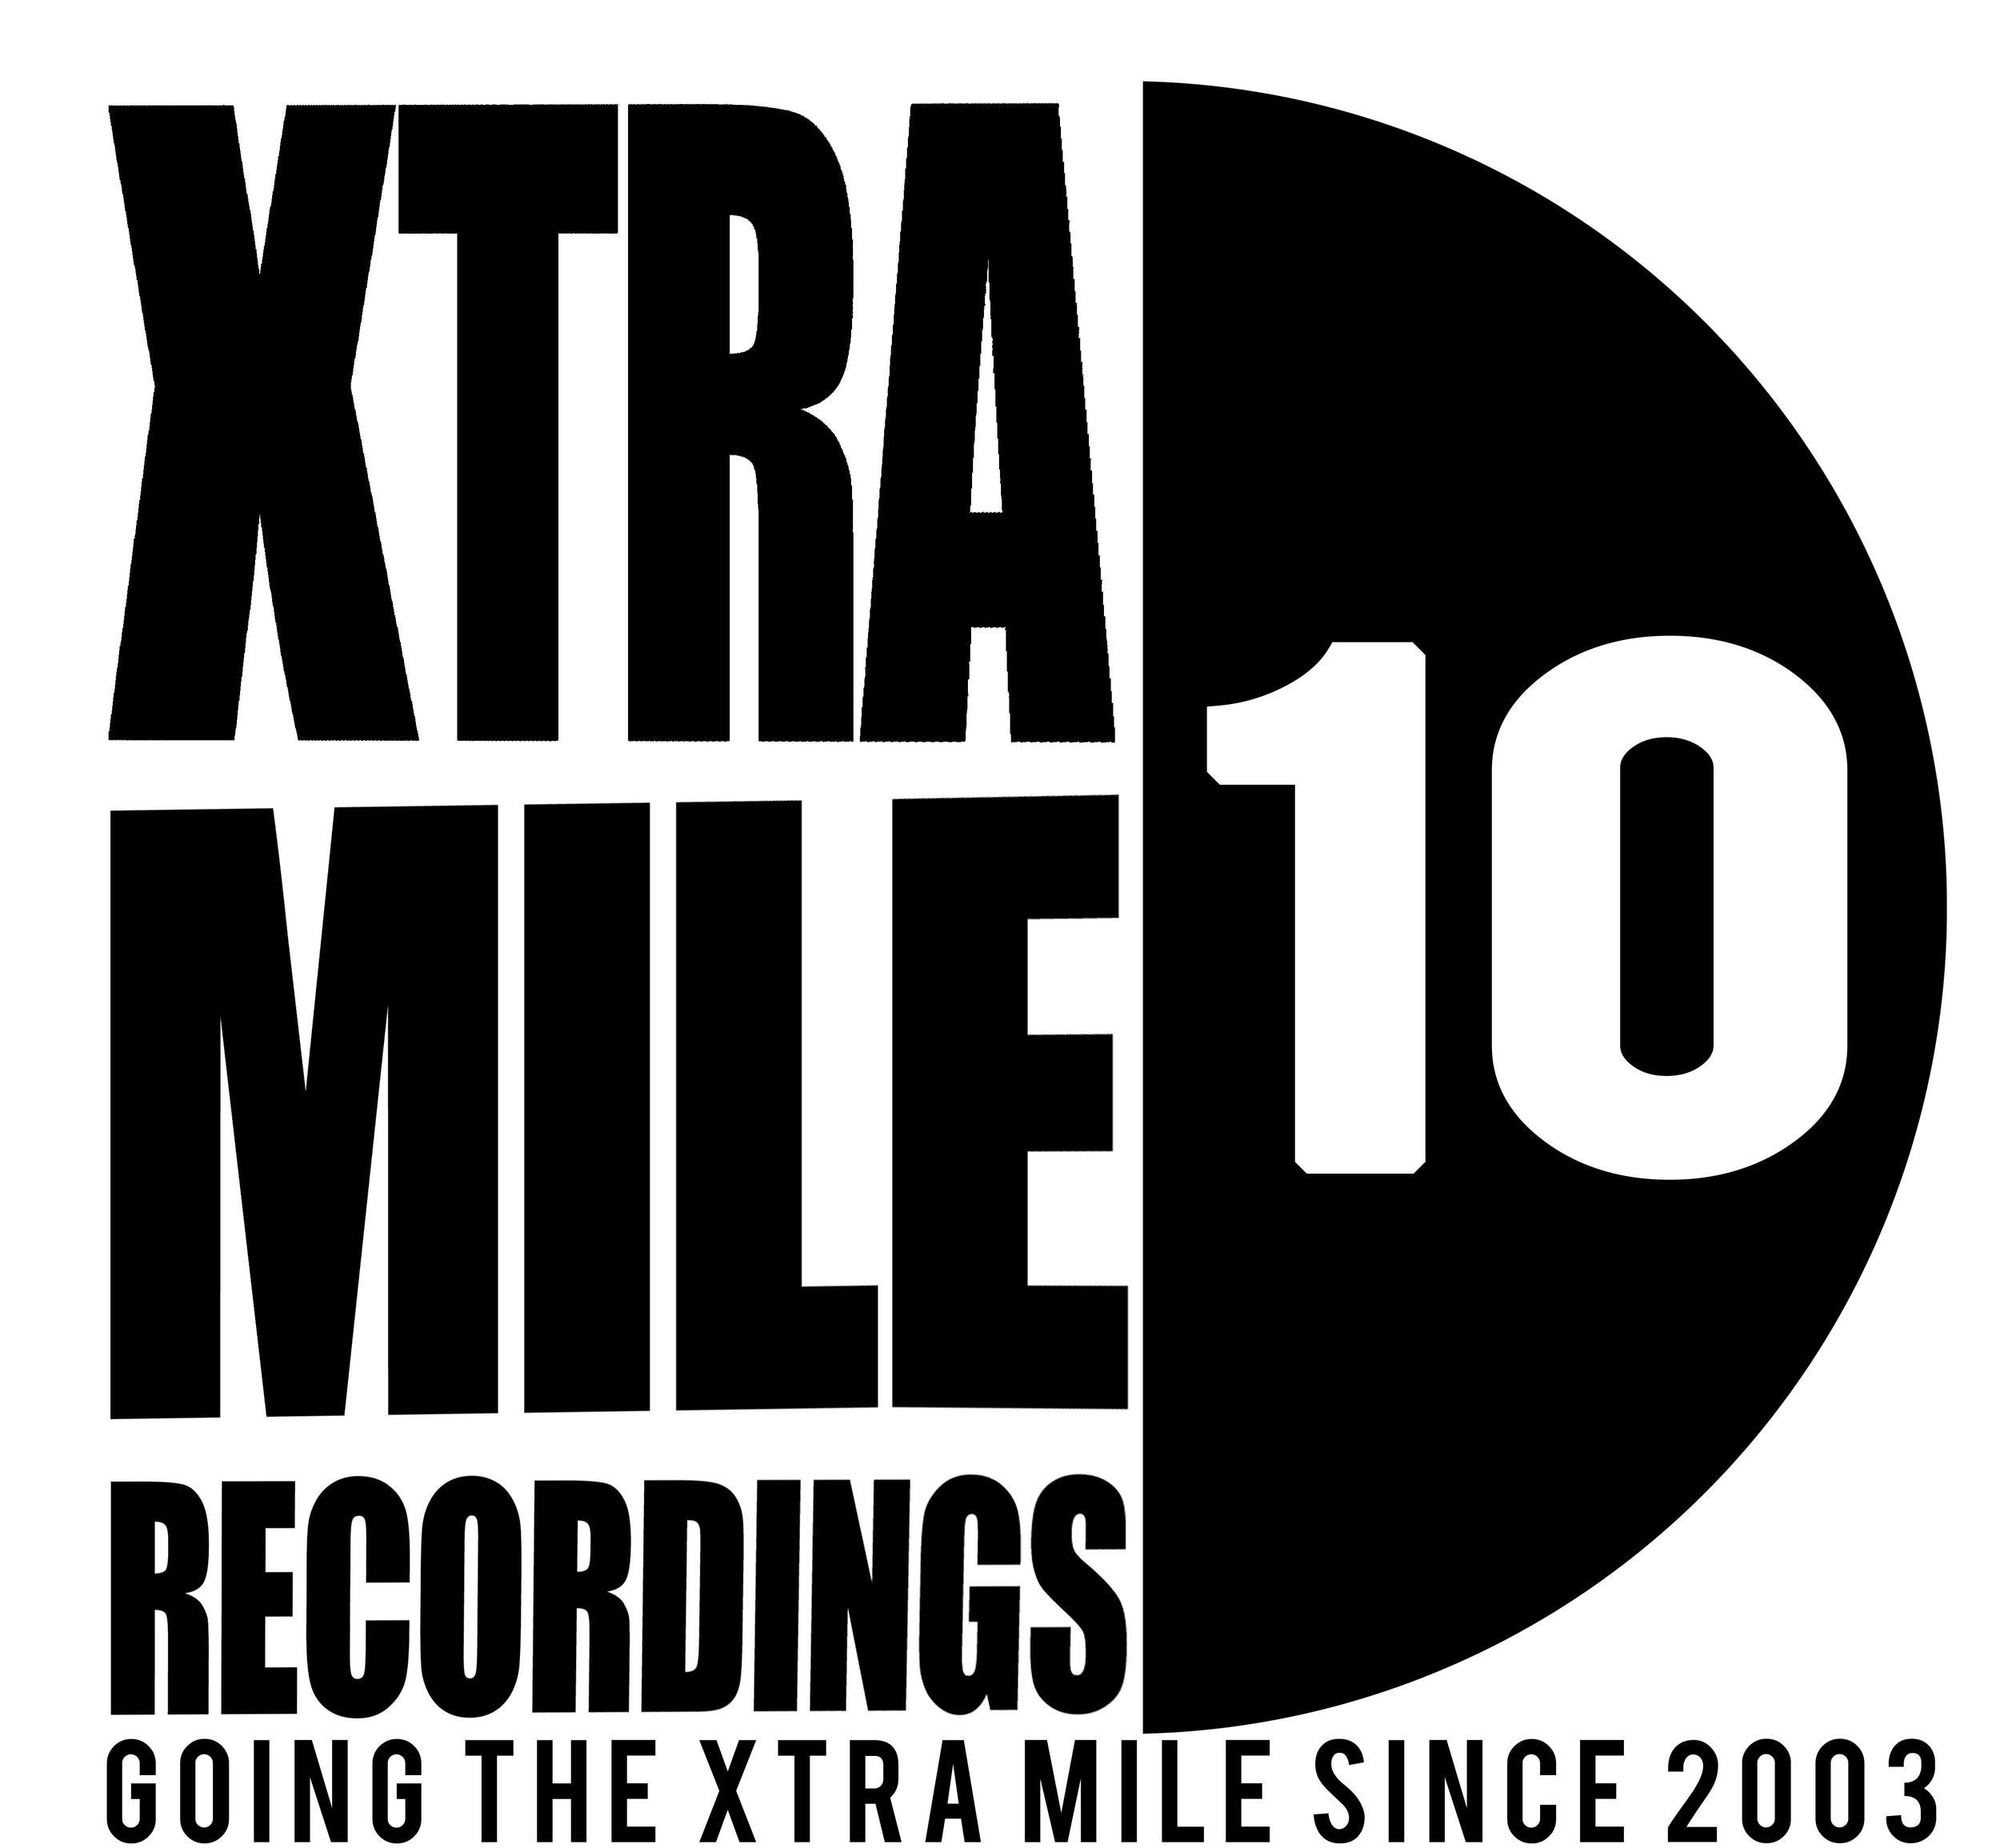 Xtra Mile Logo for 10 Year Anniversary